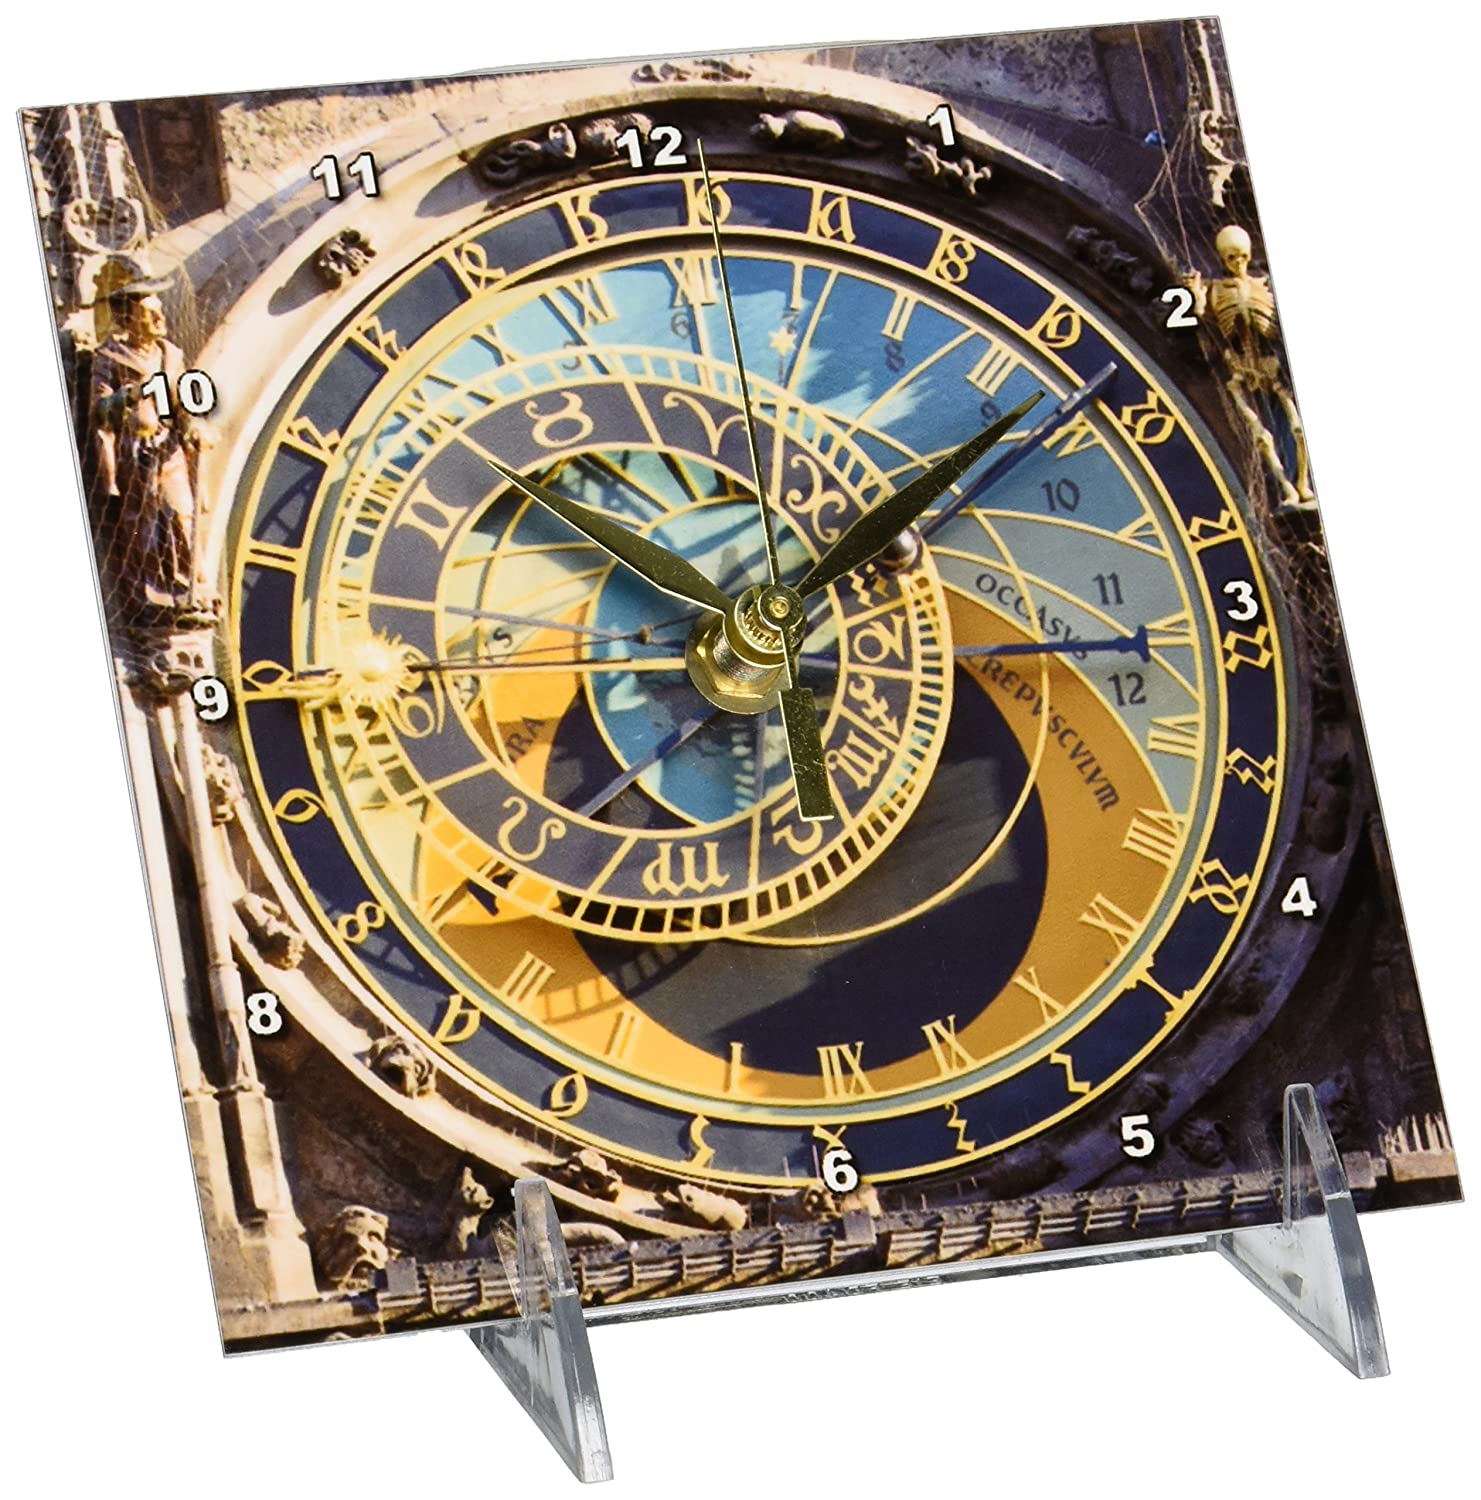 Amazon.com: 3dRose Danita Delimont - Clock Towers - Astronomical Clock, Orloj, Prague, Czech Republic - EU06 THA0021 - Tom Haseltine - 6x6 Desk Clock ...